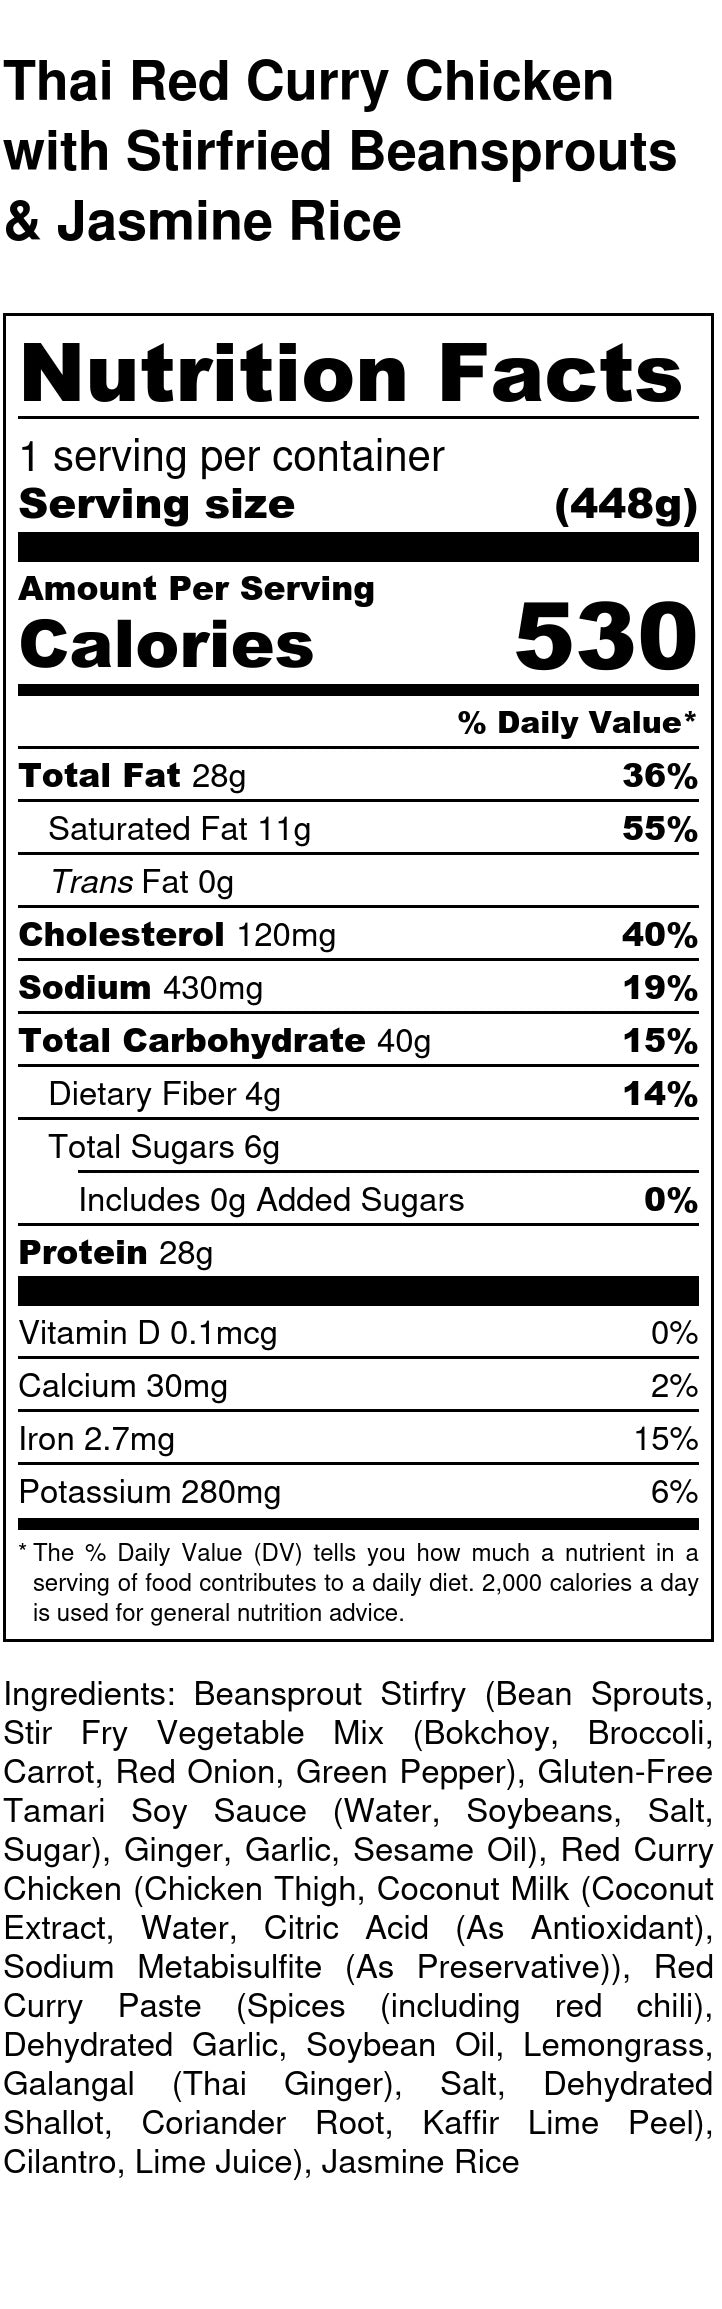 Thai Red Curry Chicken Nutrition Facts